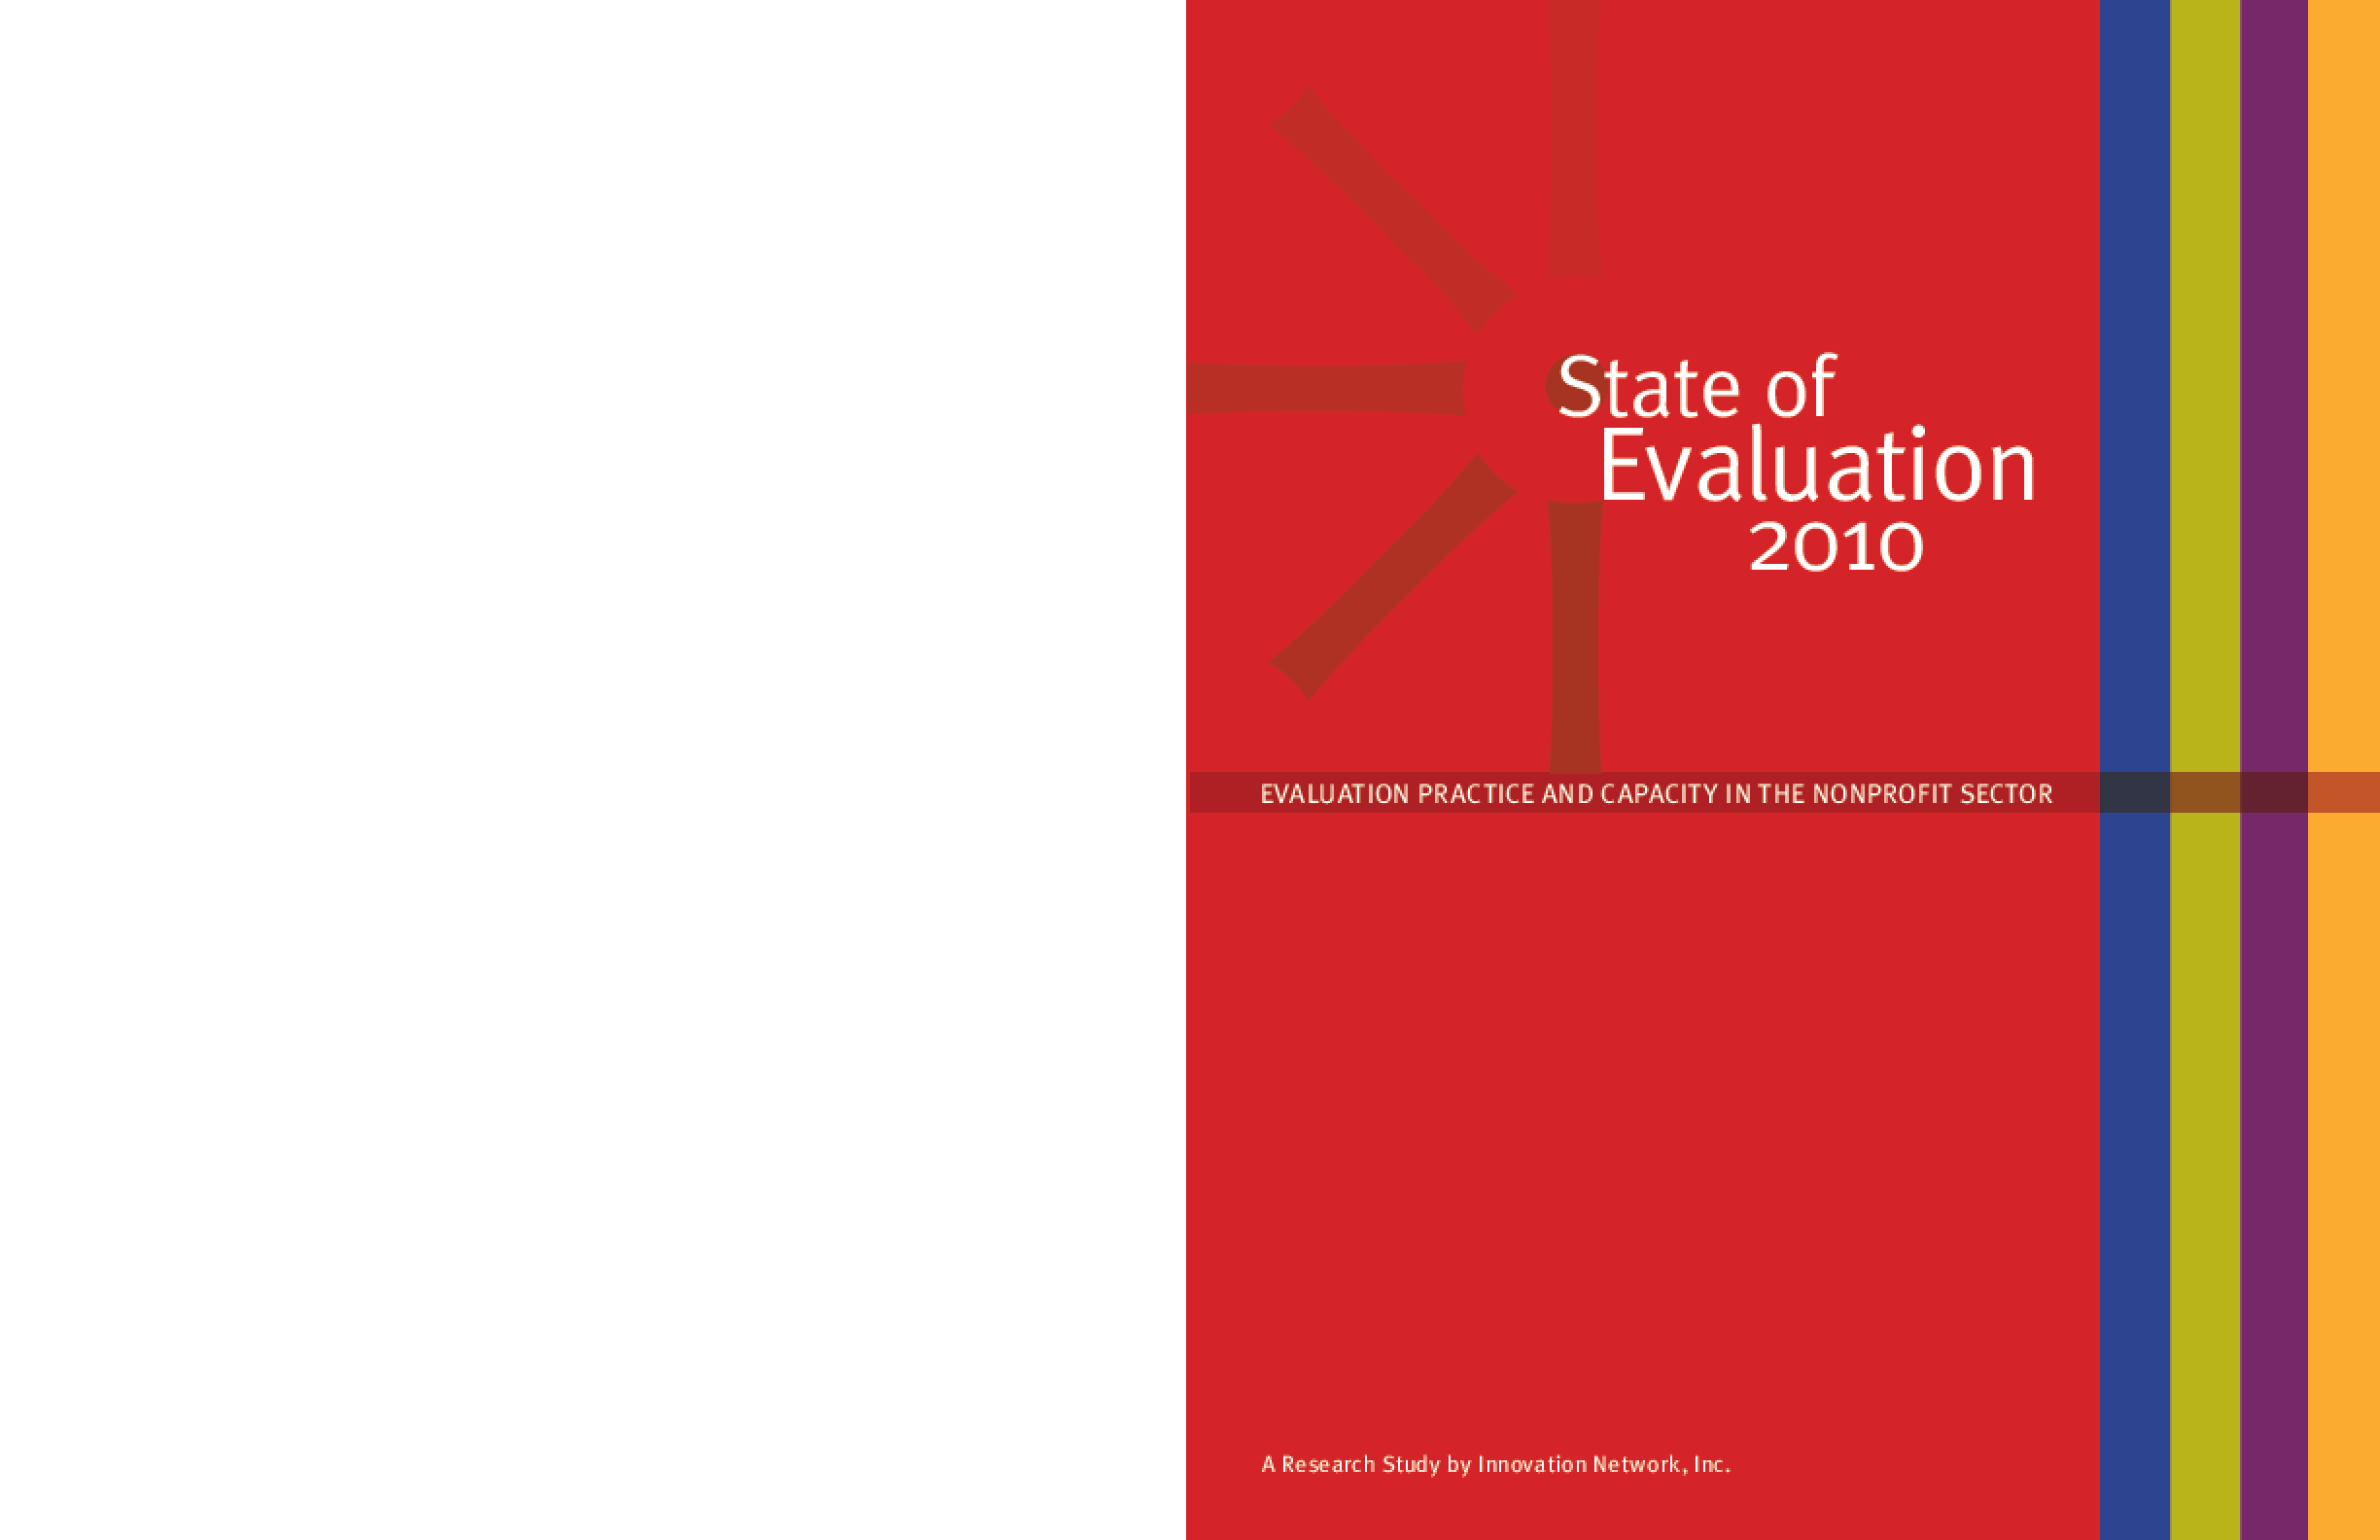 State of Evaluation 2010: Evaluation Practice and Capacity in the Nonprofit Sector